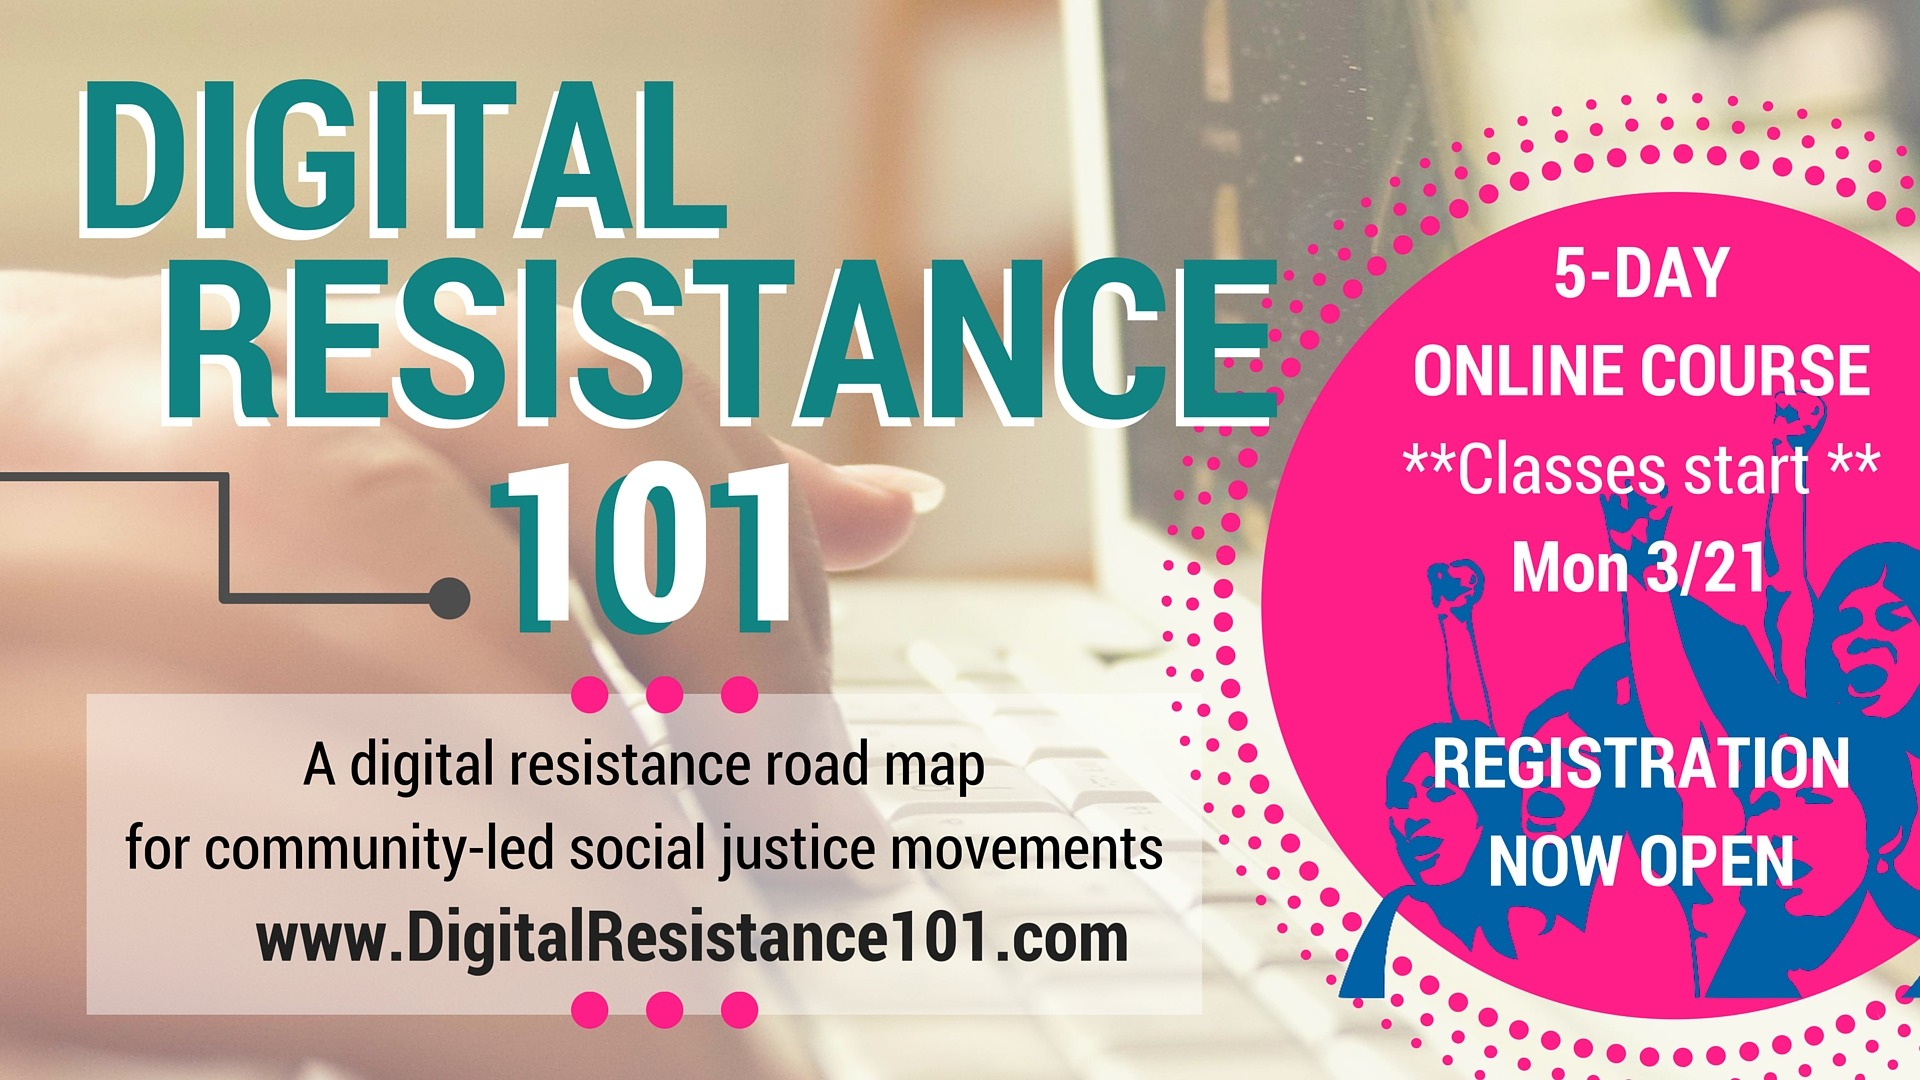 Announcing the launch of Digital Resistance 101